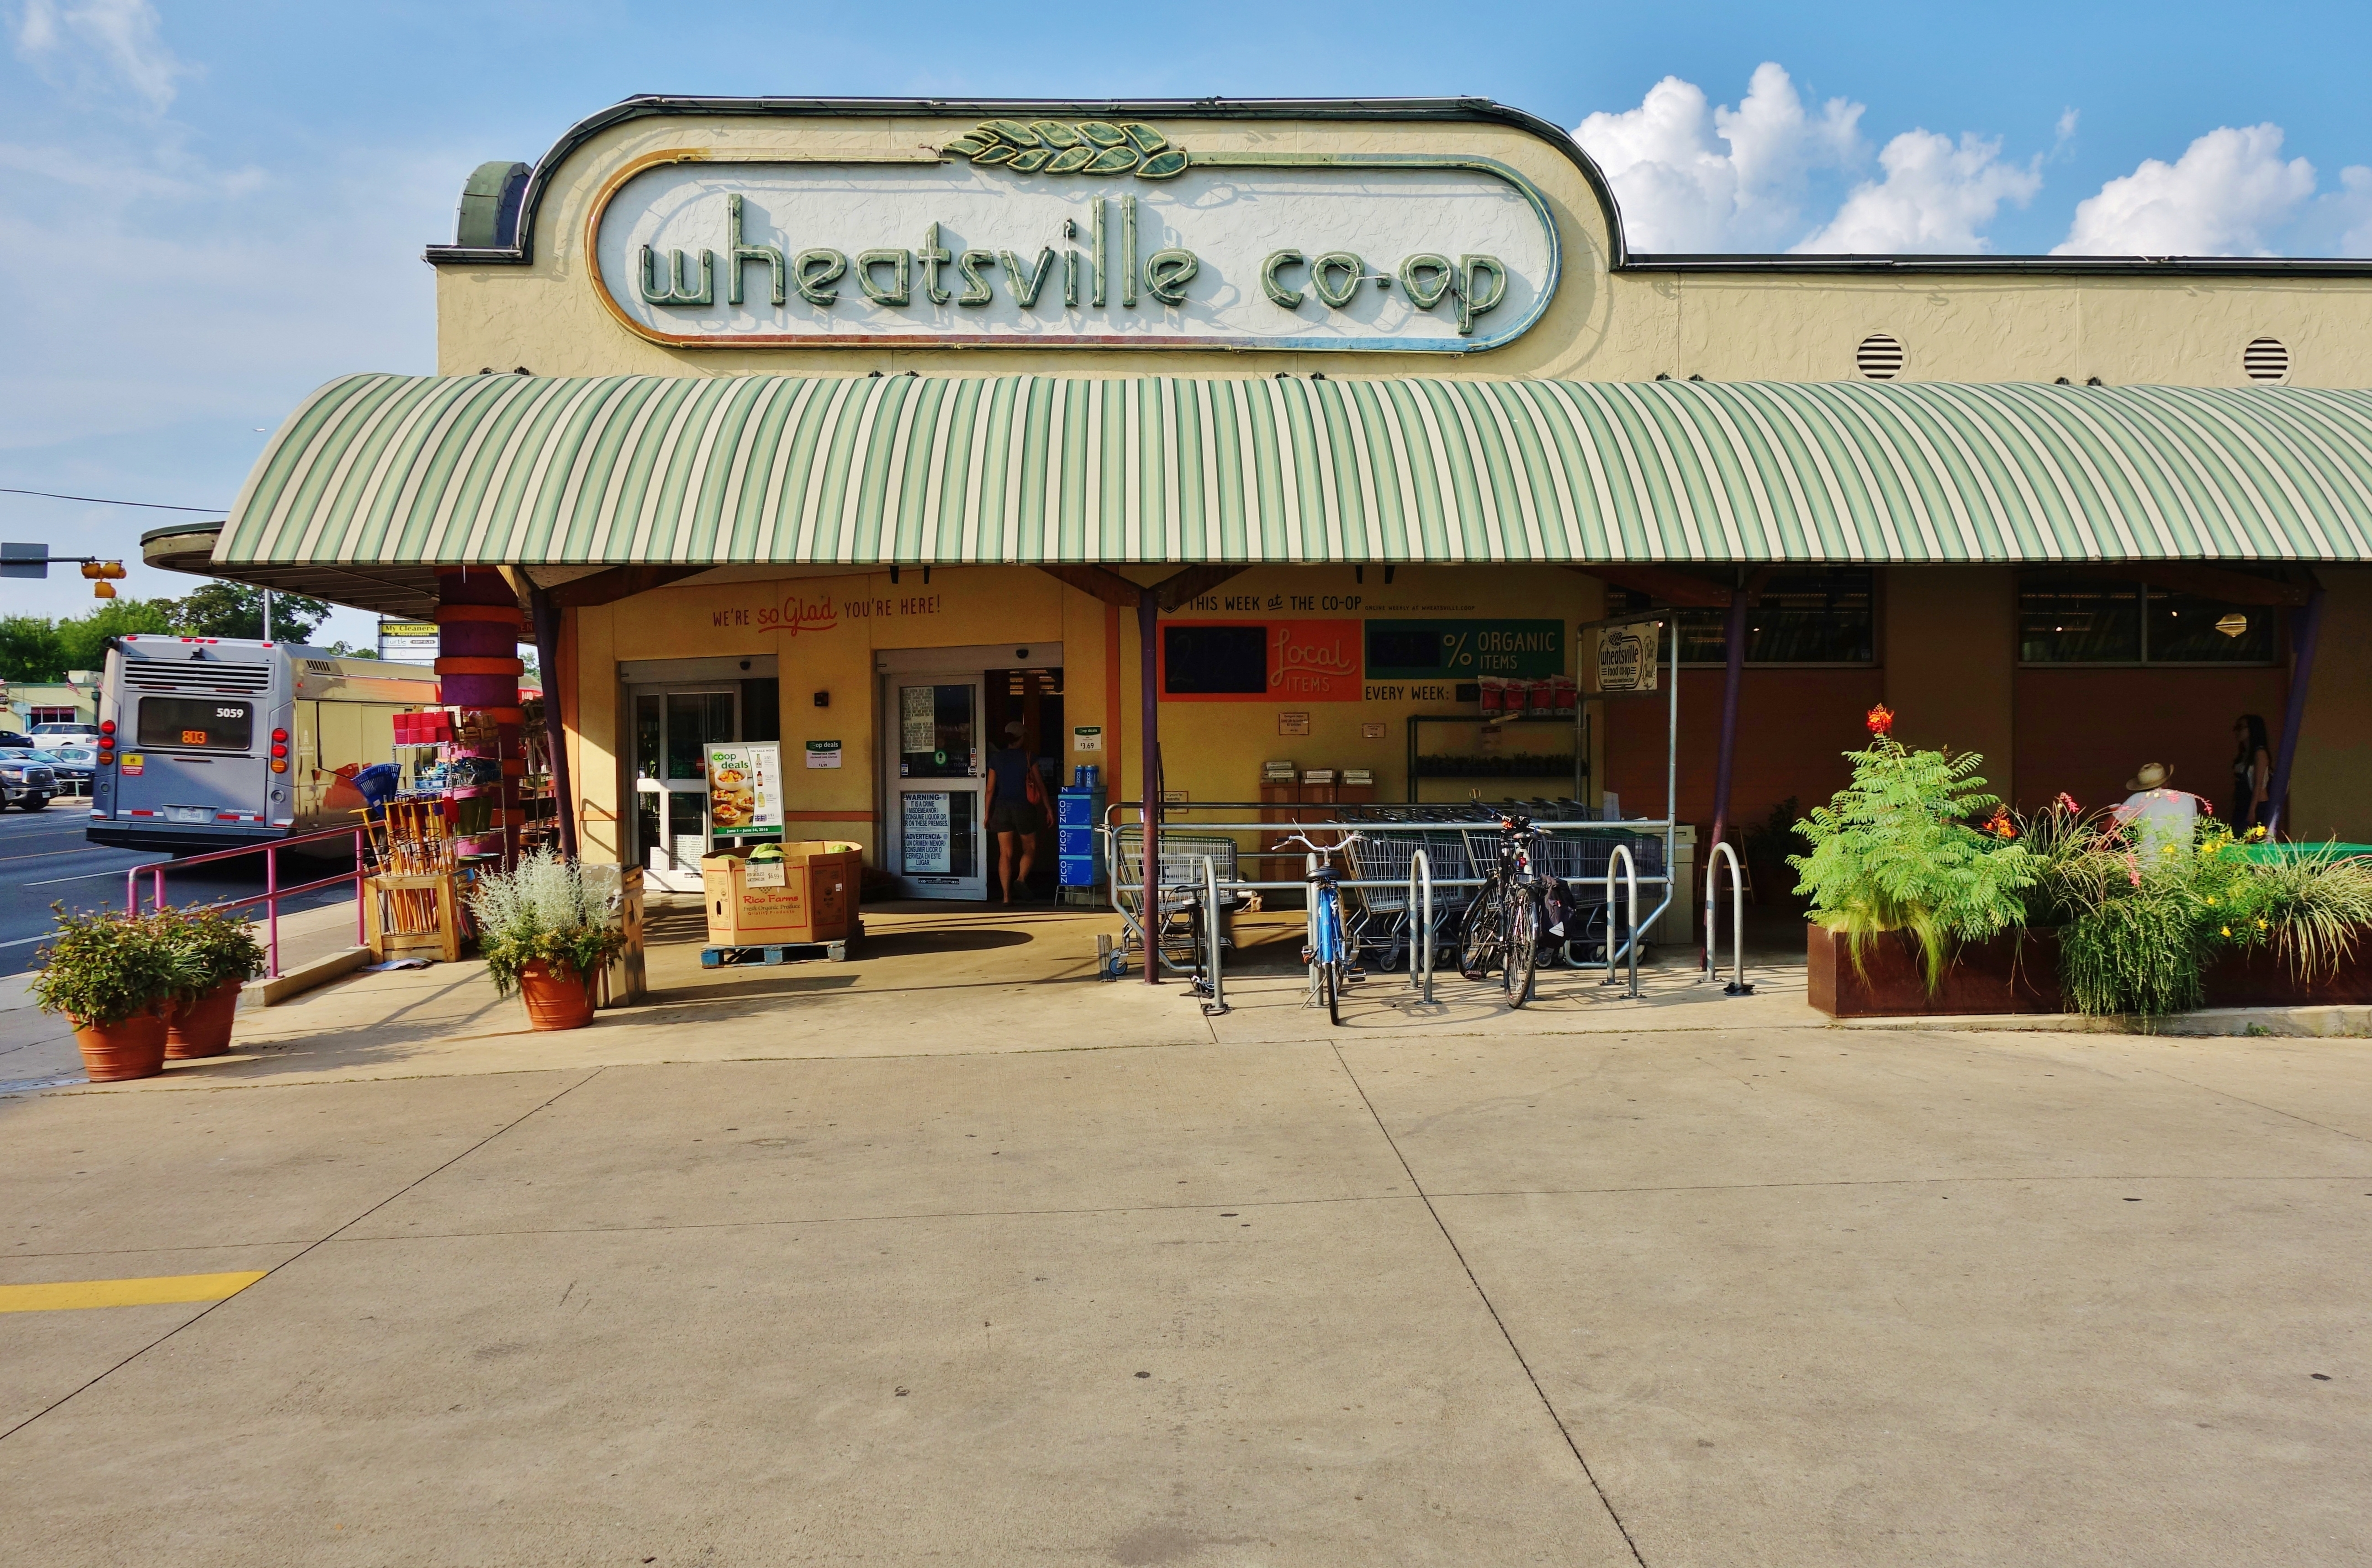 Wheatsville Food Co-op on Guadalupe